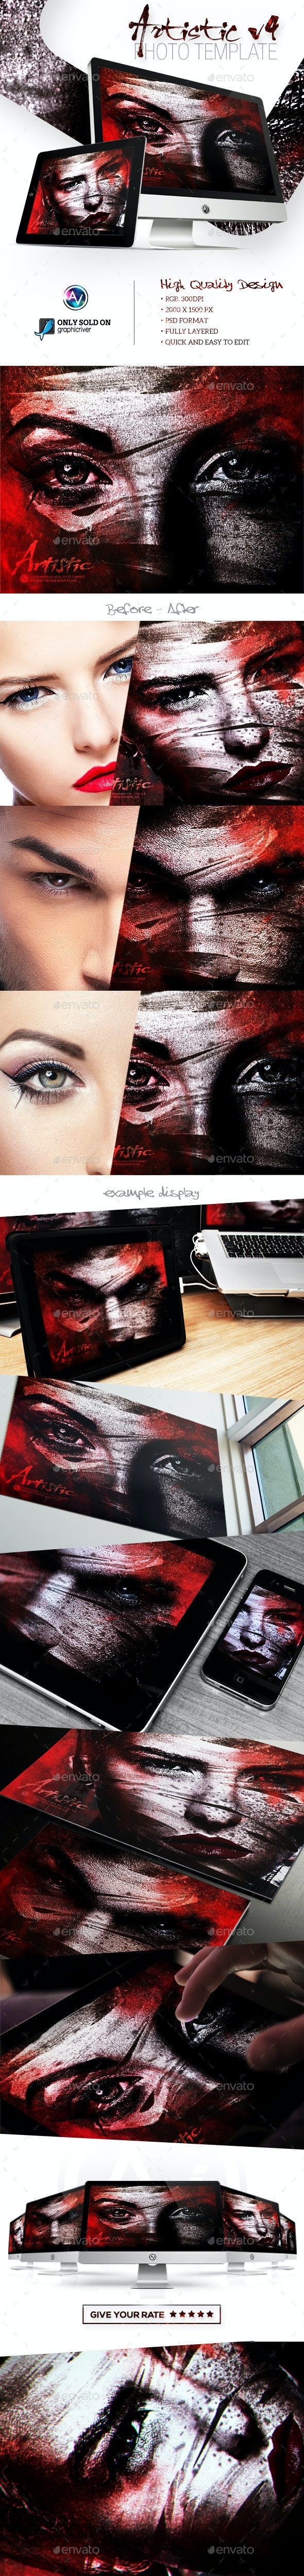 Artistic Photo Template V4 - Artistic Photo Templates